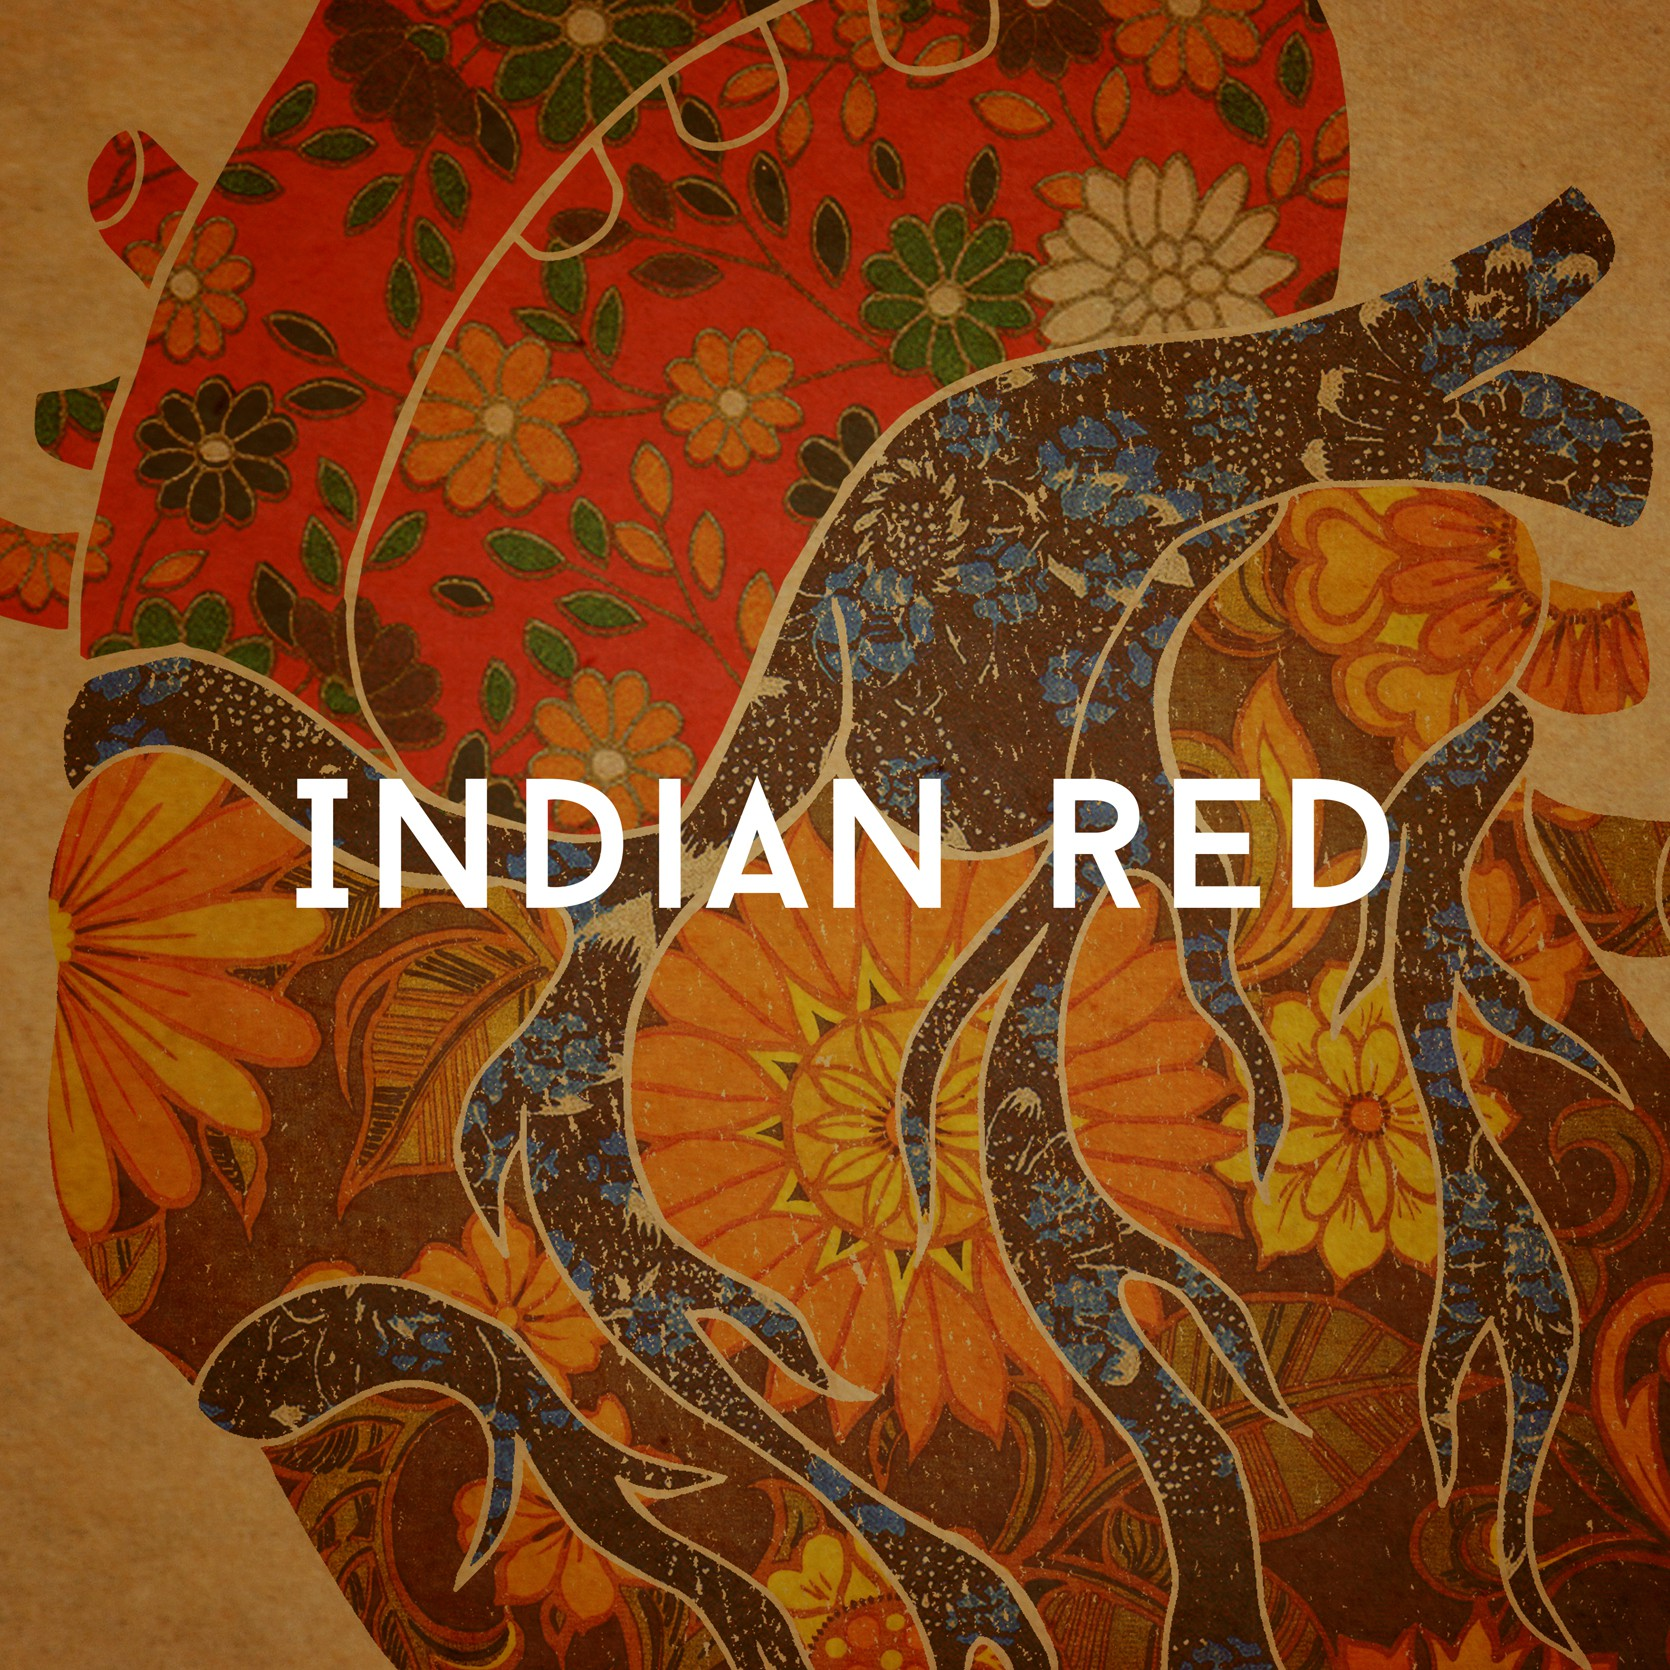 Album cover contest for Indian Red Band